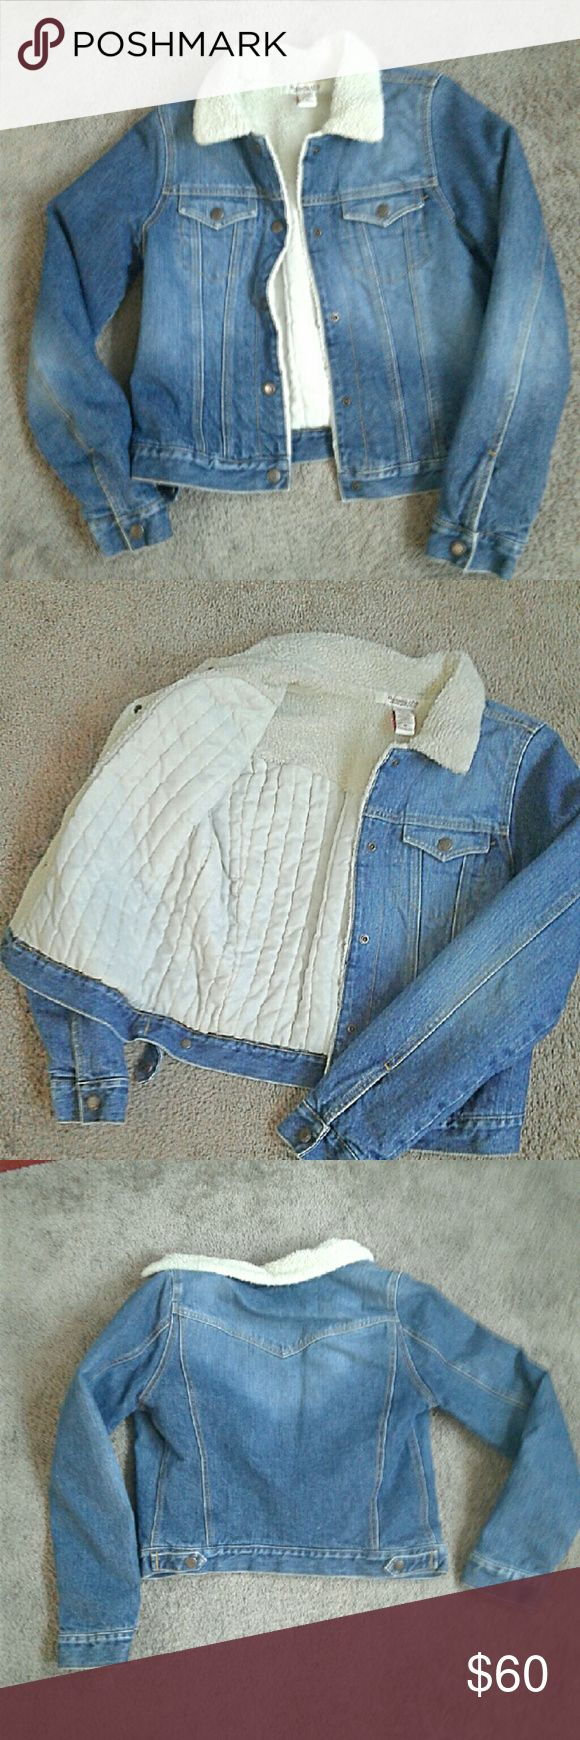 2 hour Sale Abercrombie and Fitch Coat Jean jacket Very warm Worn once looks brand new Size Medium  Abercrombie and Fitch jacket Fuzzy and insulated on inside Abercrombie & Fitch Jackets & Coats Jean Jackets